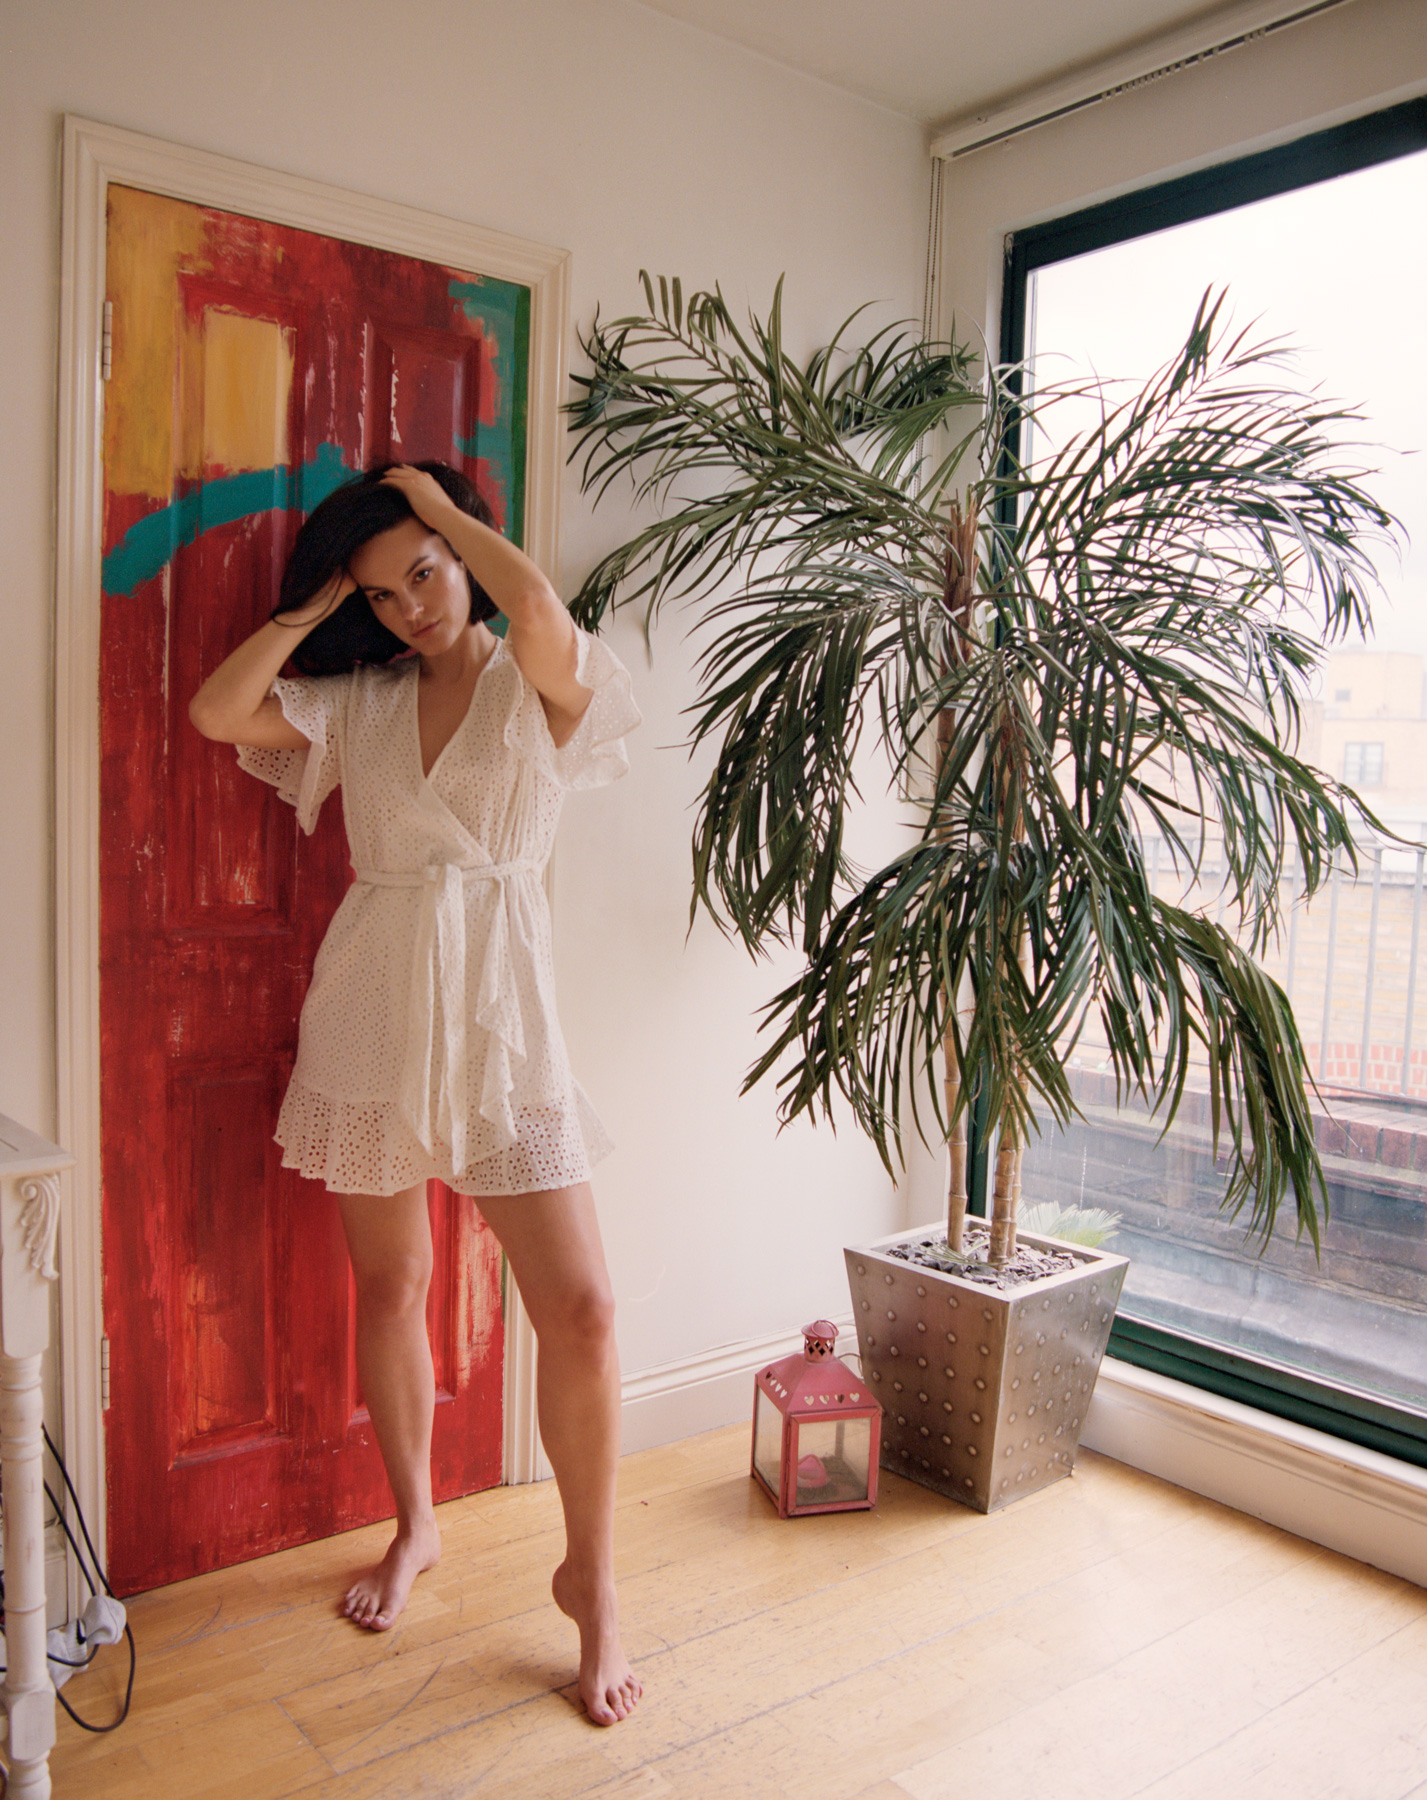 Lola Coca, modelled infront of red door at her apartment in Shoreditch, London, By ioannis Koussertari